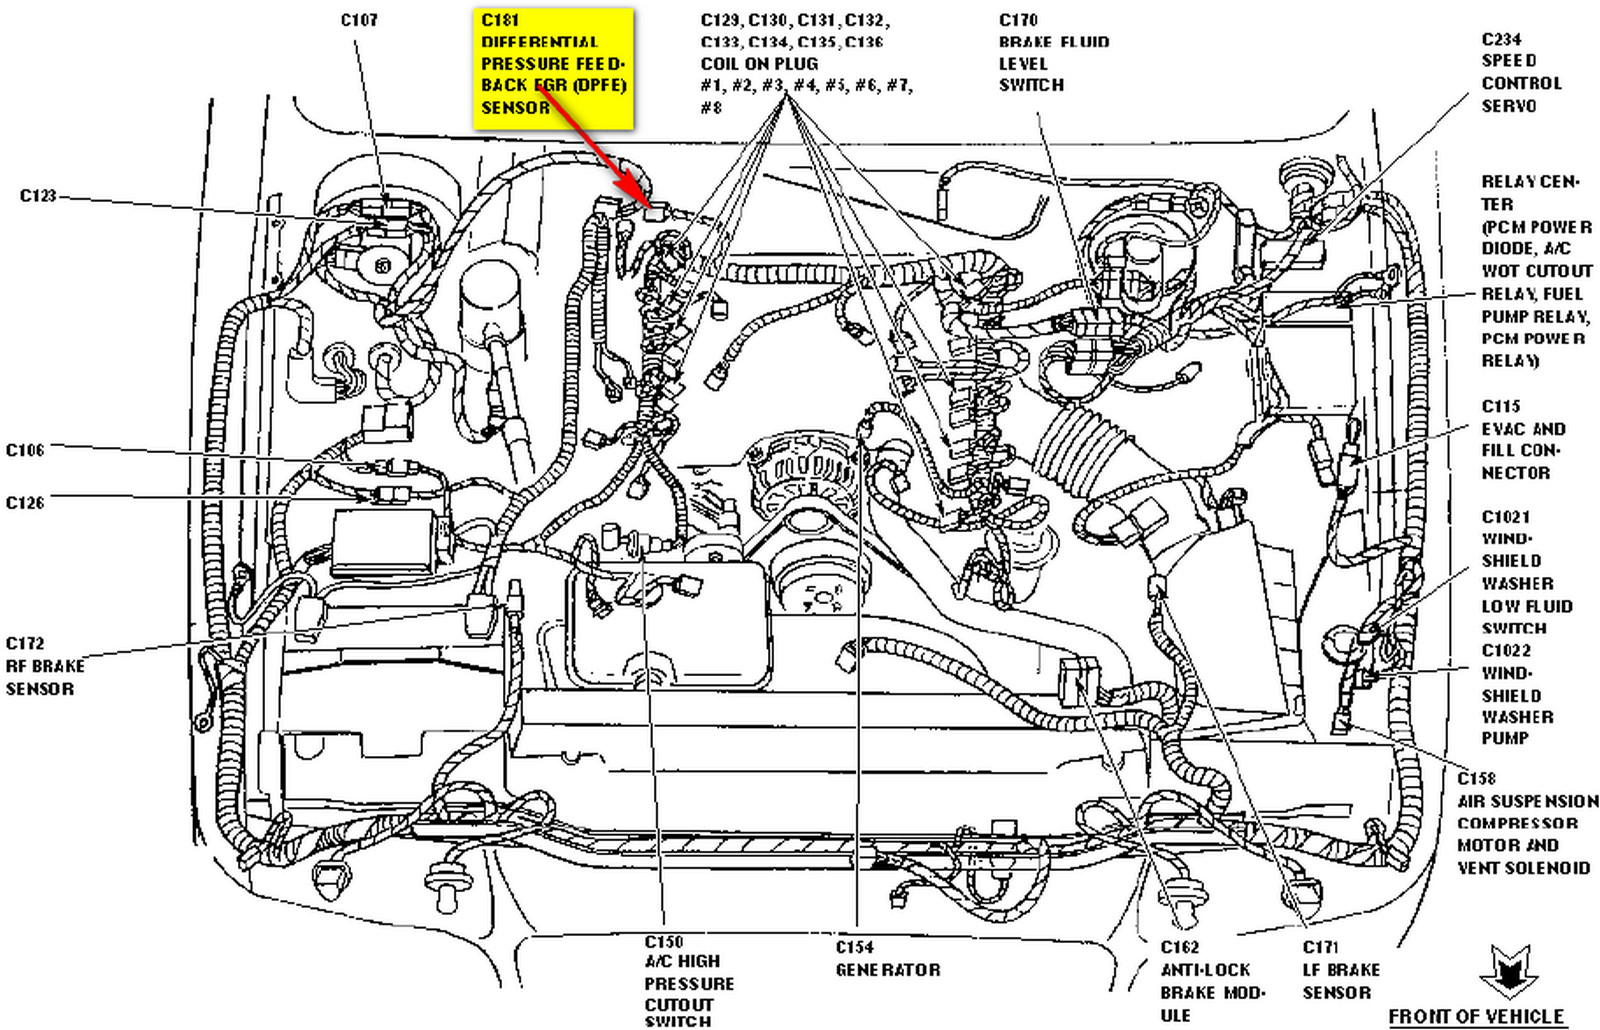 Ford Expedition 5 4 2012 Specs And Images as well Cooling System Diagram 2003 Duramax in addition T7175145 Firing order diagrahm 3 0l 2002 ford together with 1527f 93 Ford F250 Intake Air Temperature Manifold Sensors likewise 6gc7f Dodge Ram 1500 97 Dodge Ram 1500 Code P1493 Cant Find. on 1998 f150 temperature sensor